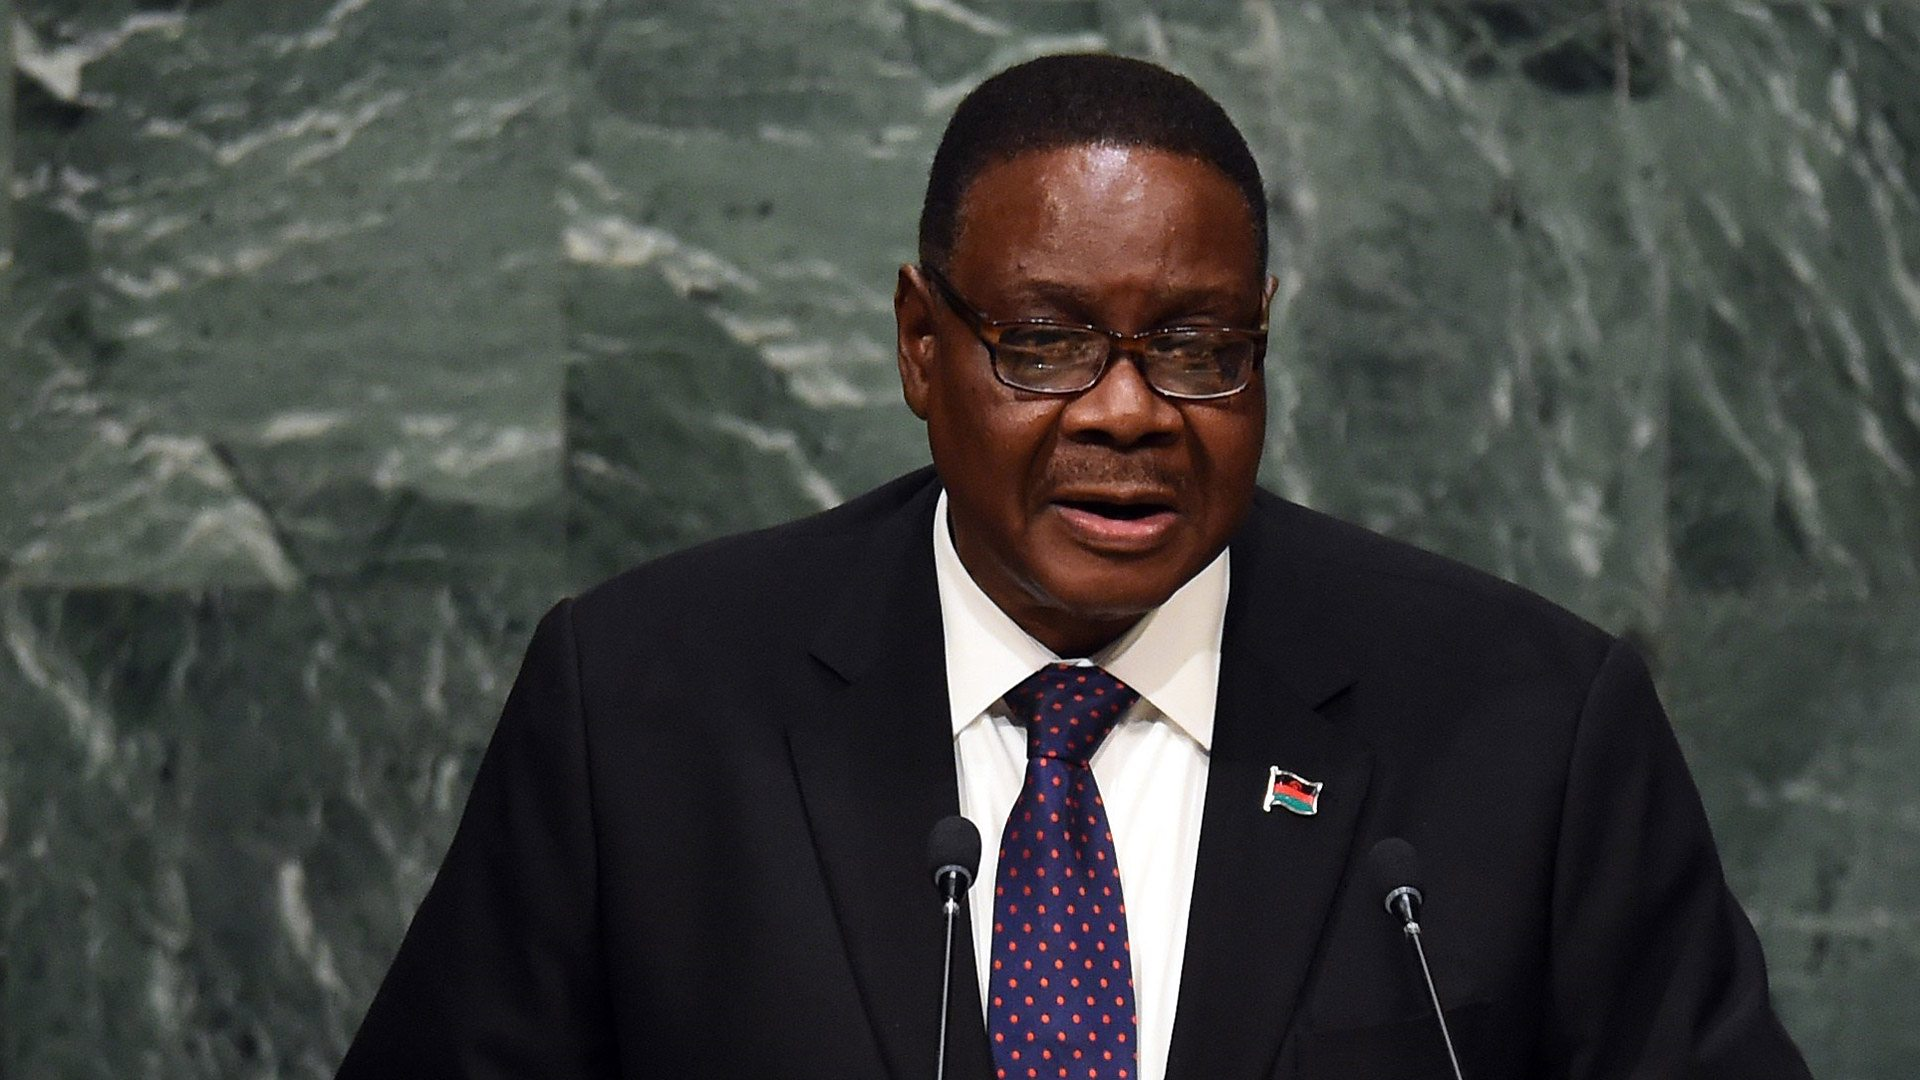 Malawi is on the road to progress